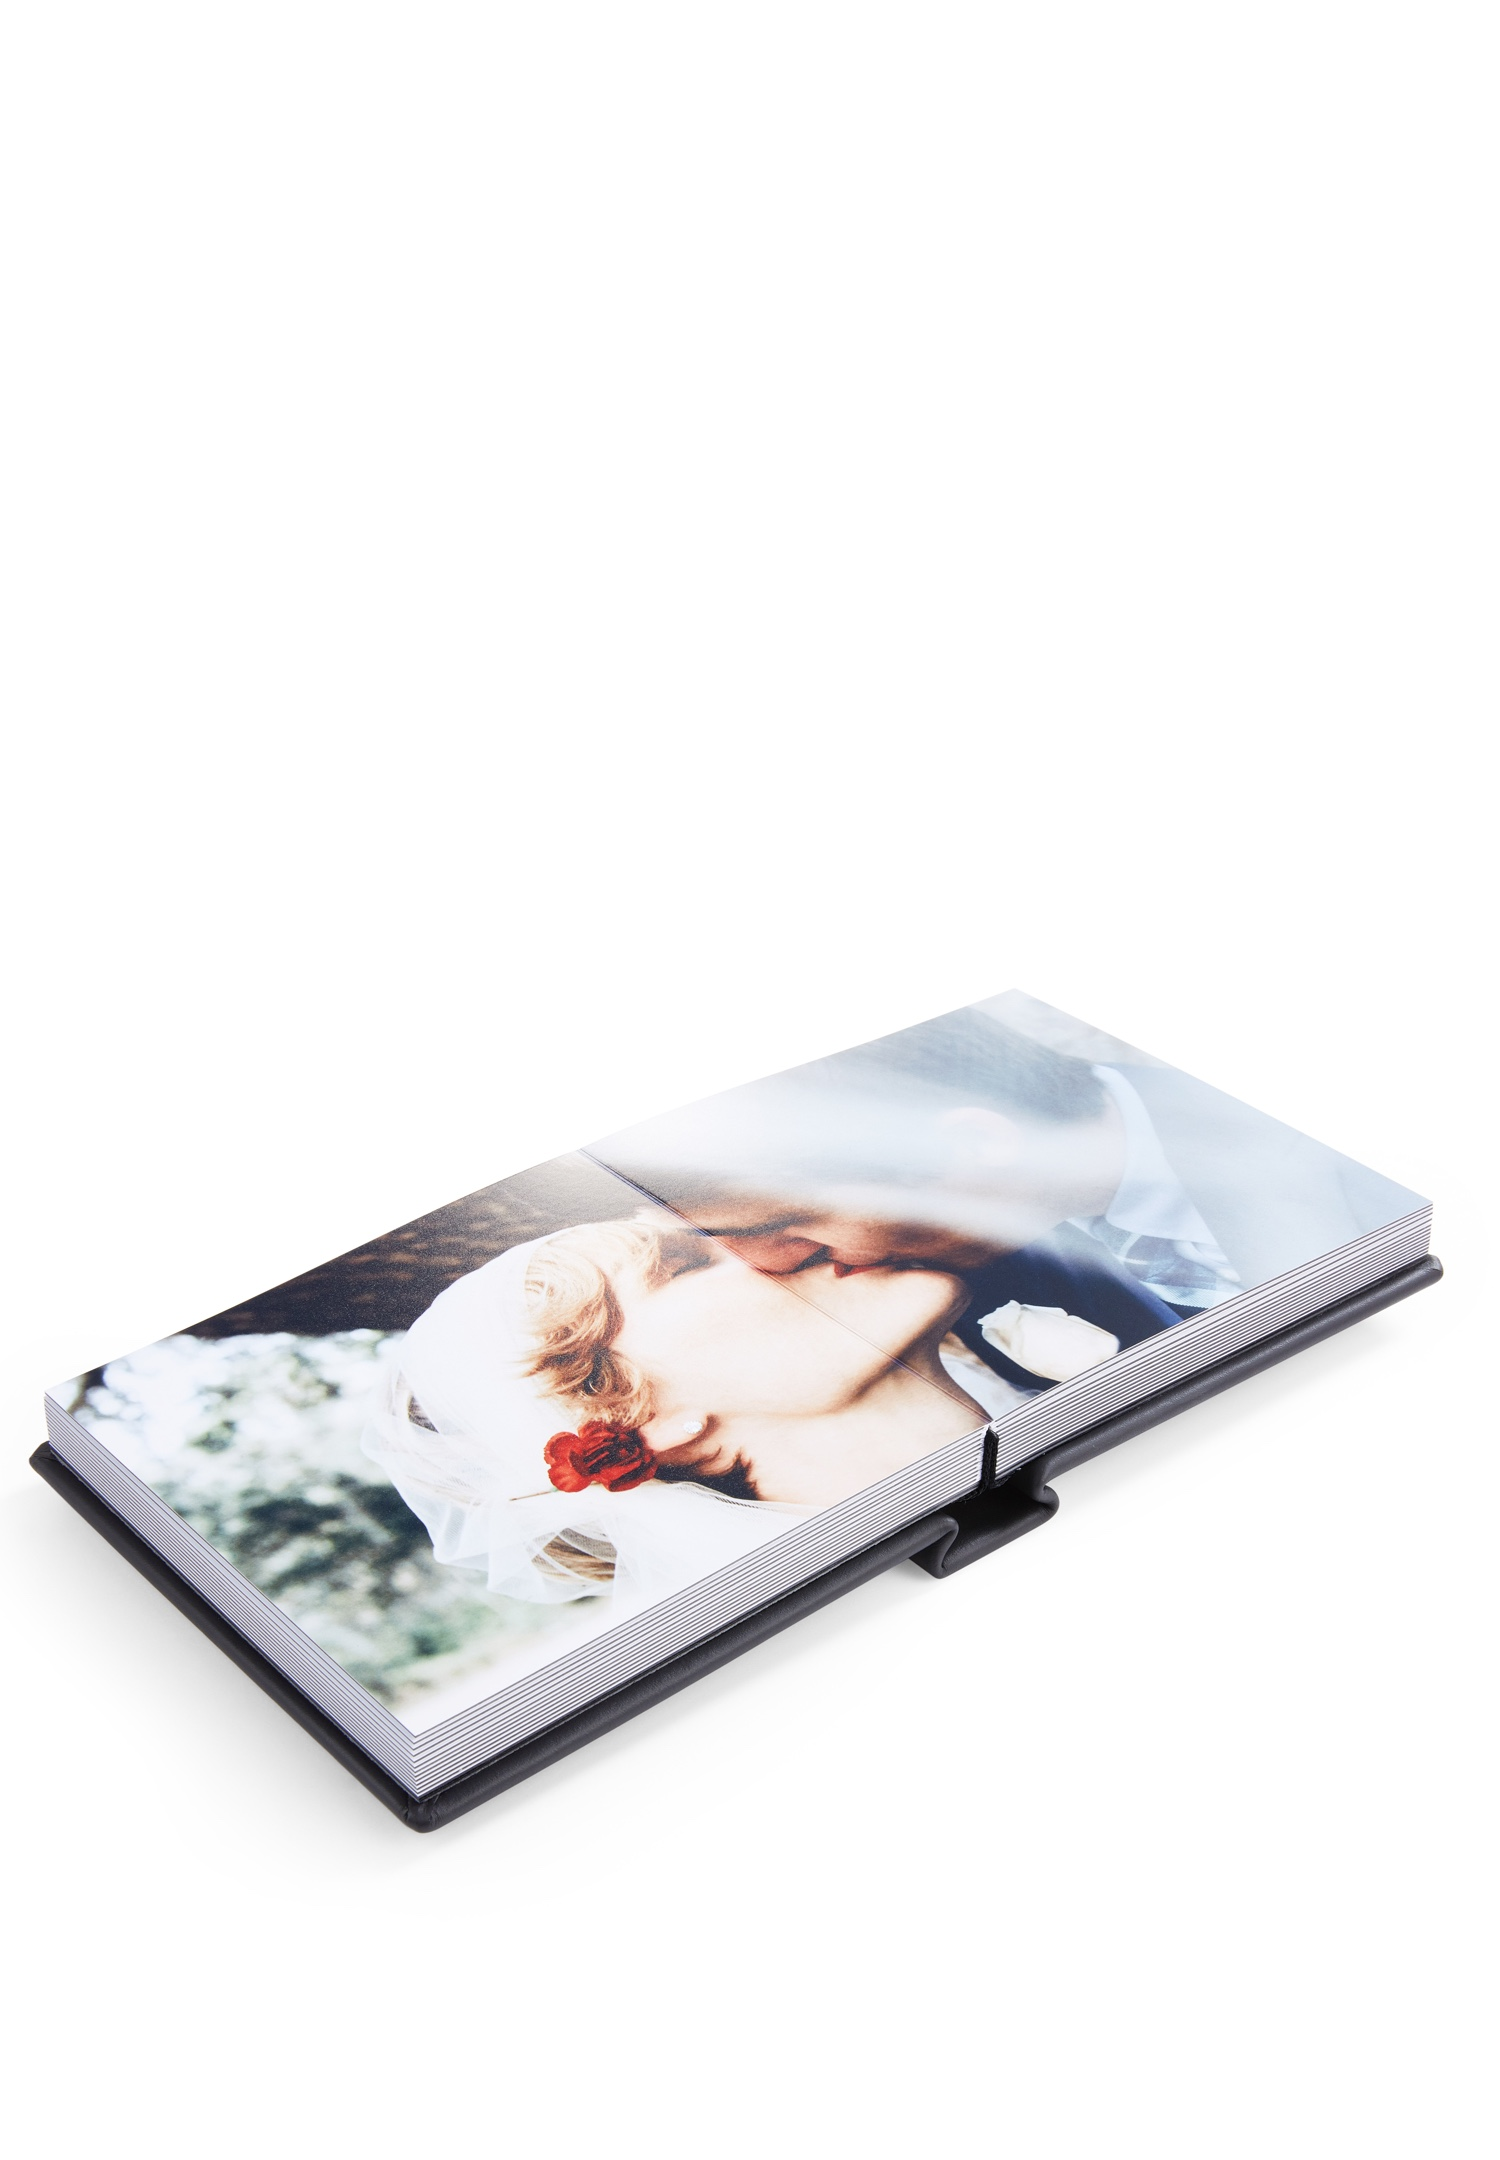 Zno Print Lab Professional Photo Album Book Printing Services For Pro Photographers